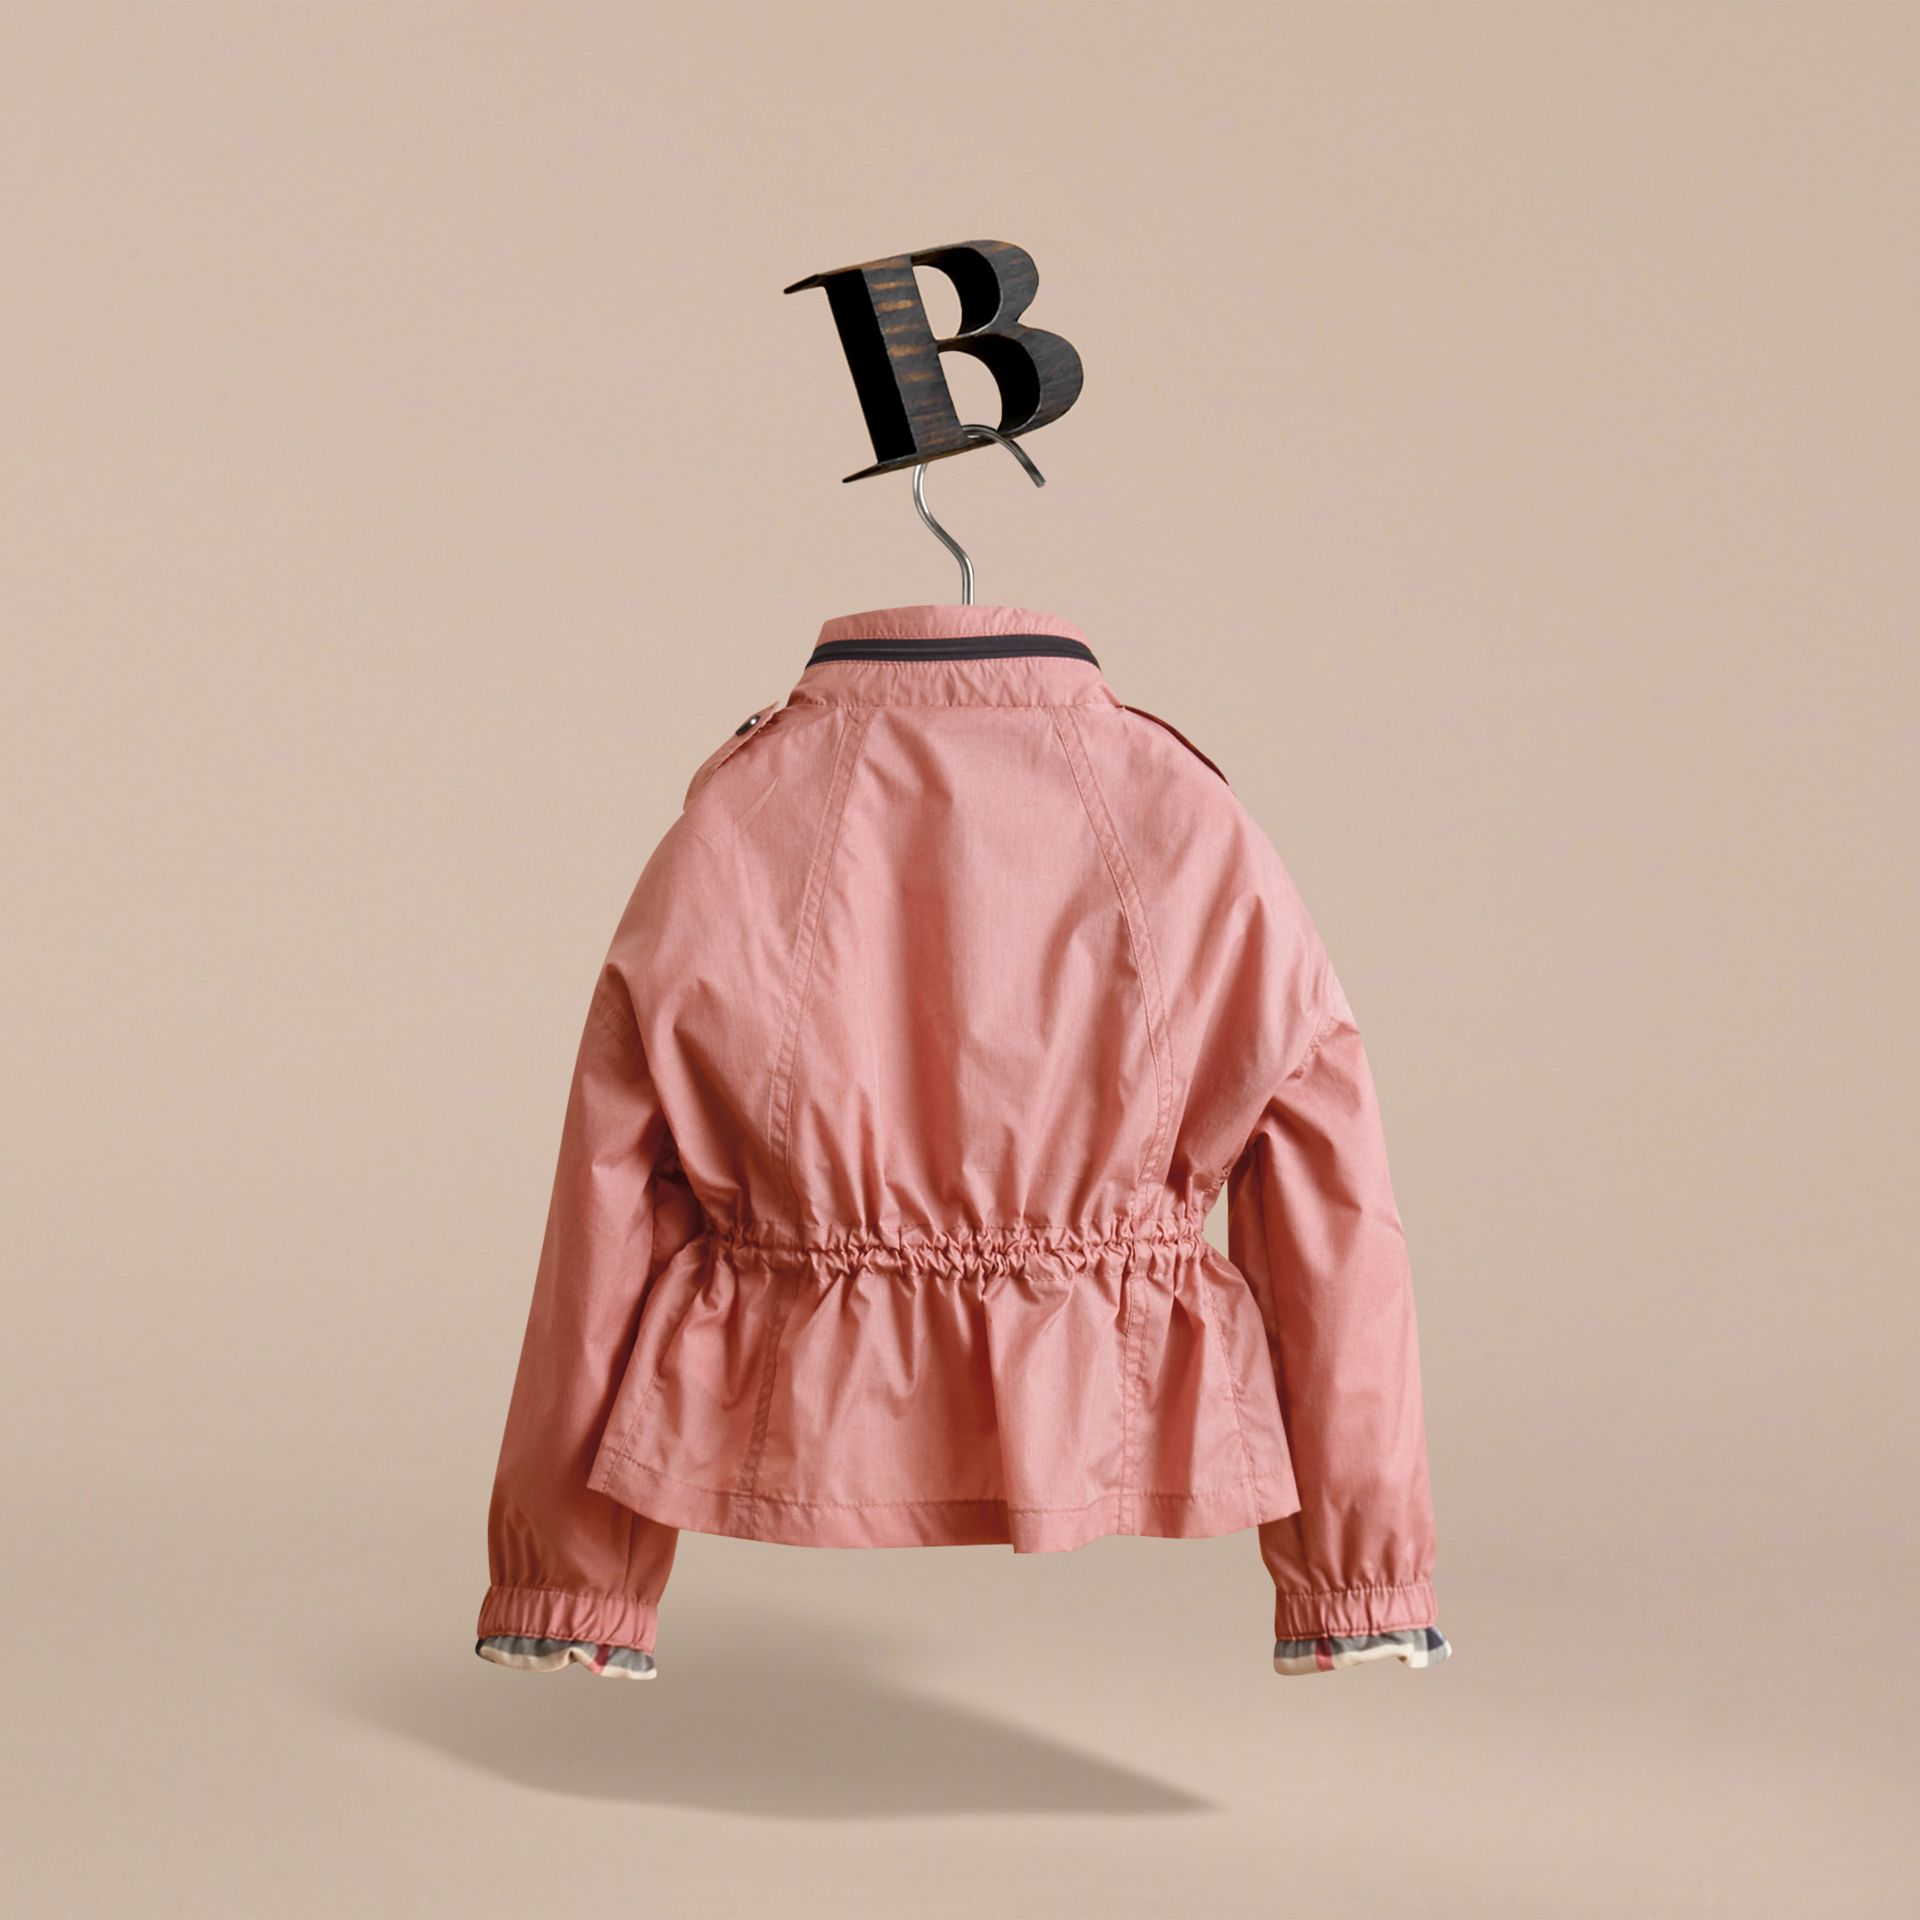 Veste imperméable avec détails check et capuche repliable (Rose Pink) - Fille | Burberry - photo de la galerie 4